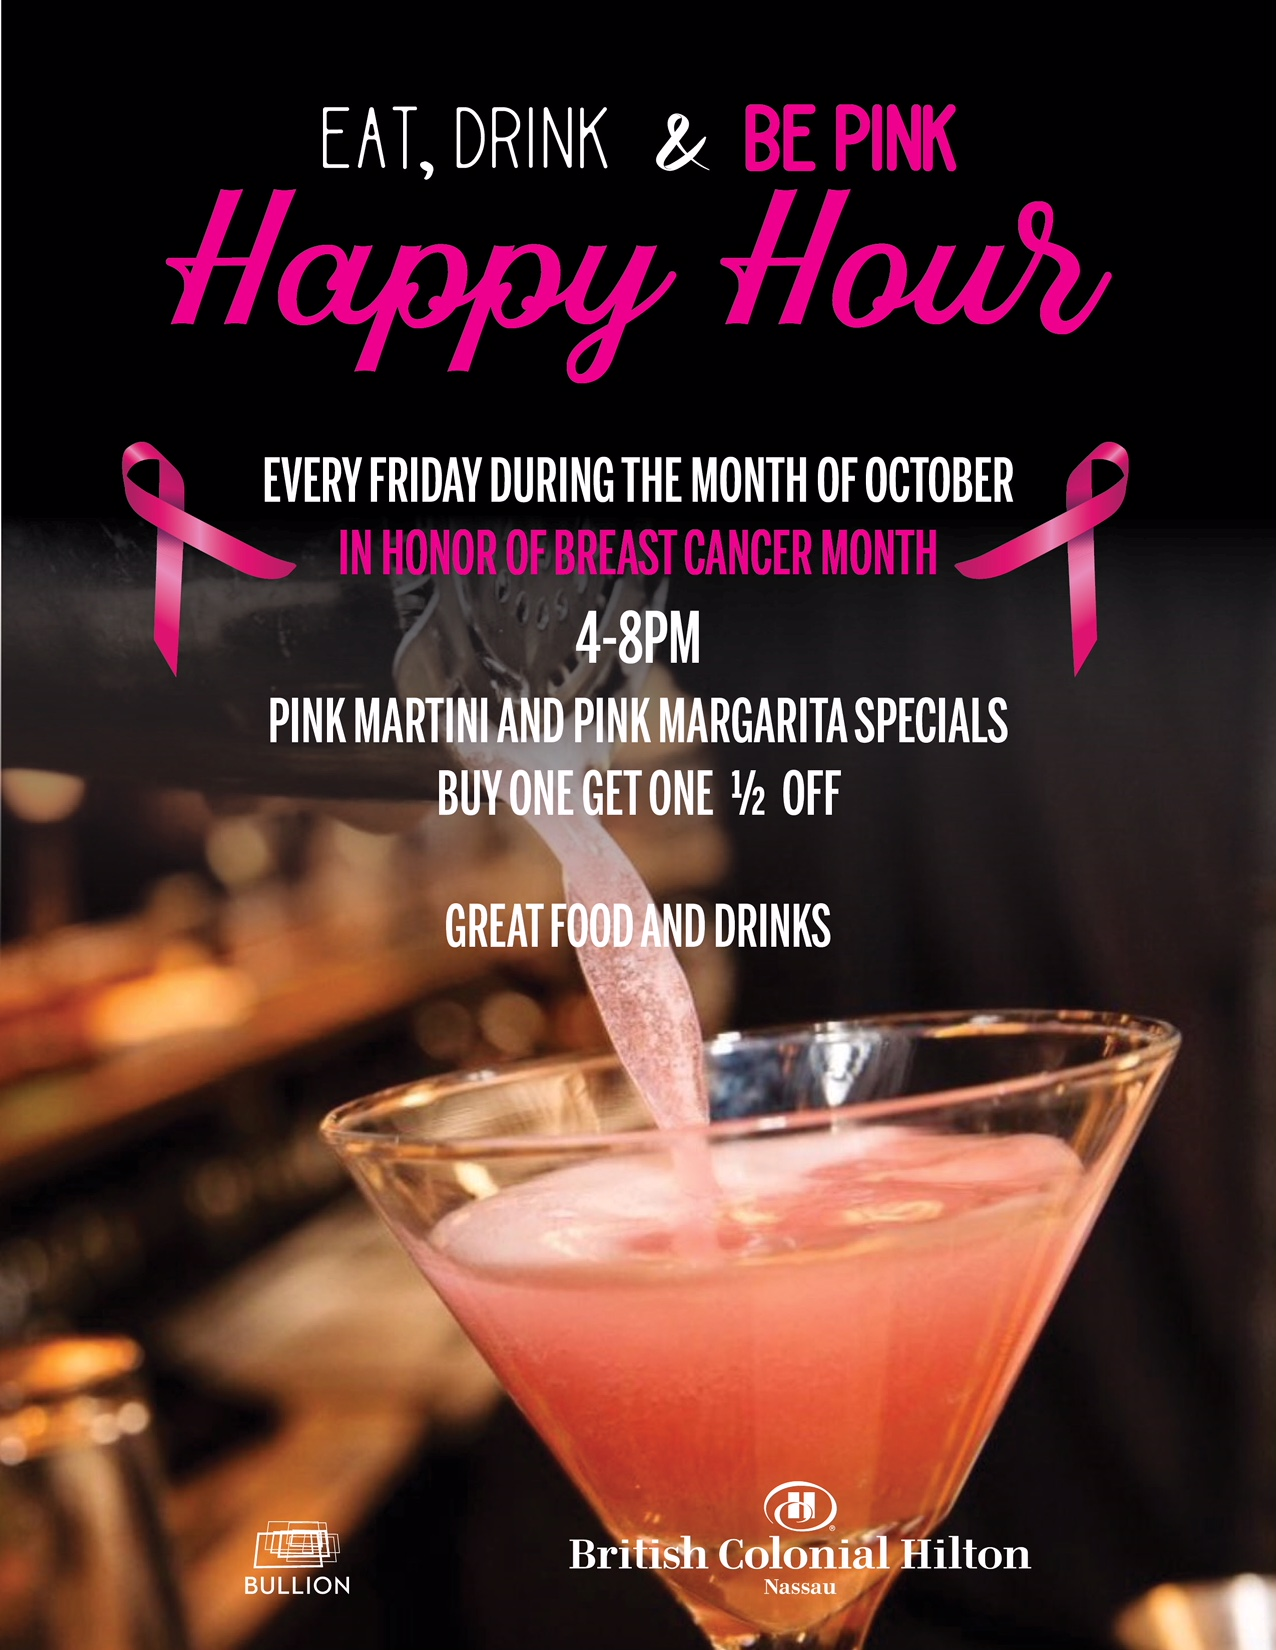 Eat, Drink & Be Pink